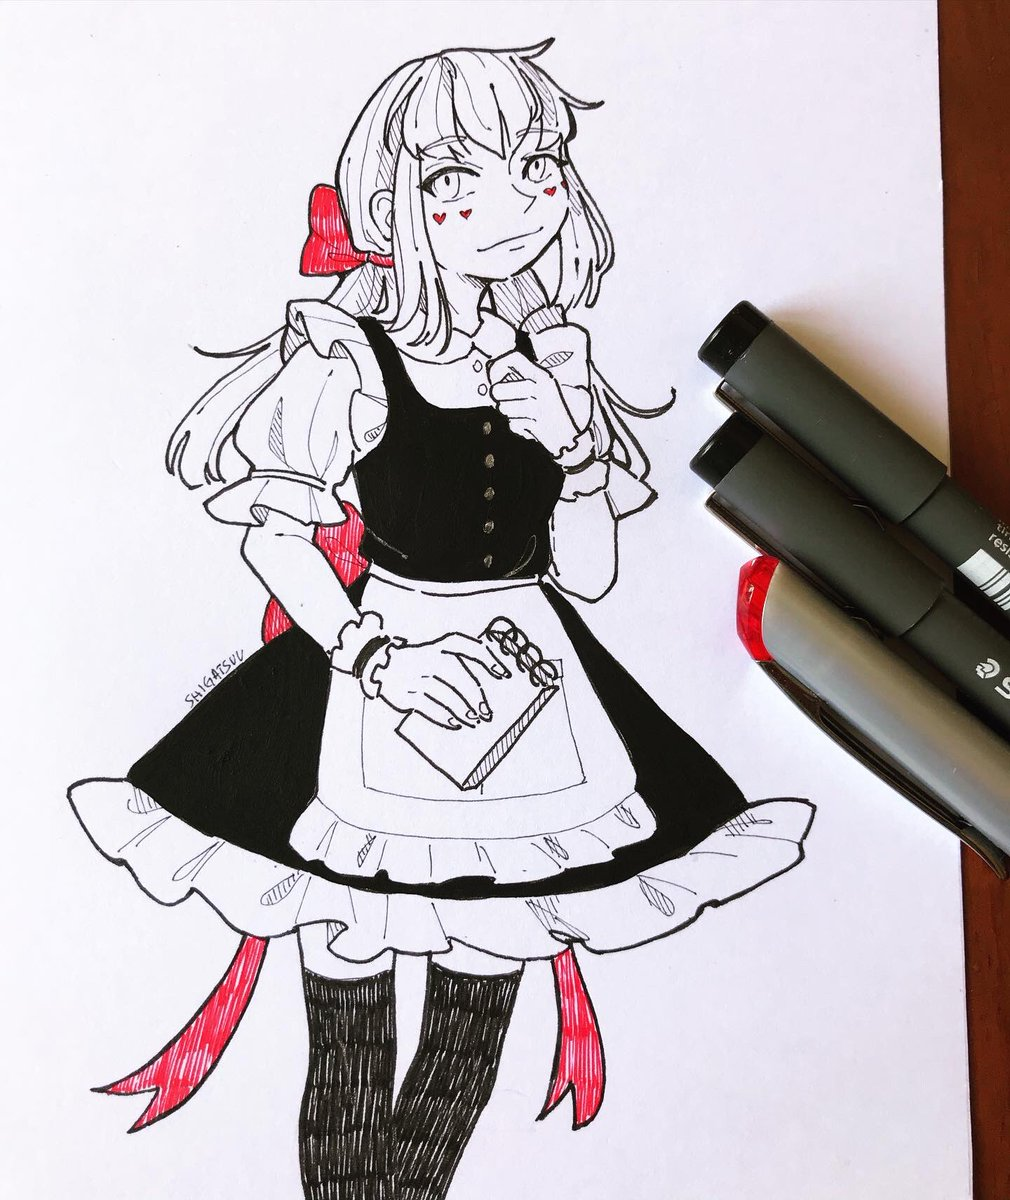 Shi Commissions Open On Twitter Day 28 Cafe Au My Haikyuu Oc Kotone Working In A Maid Cafe Spam Incoming Because I Need To Post My Last Intoned Drawings Sorry Drawing Dibujo